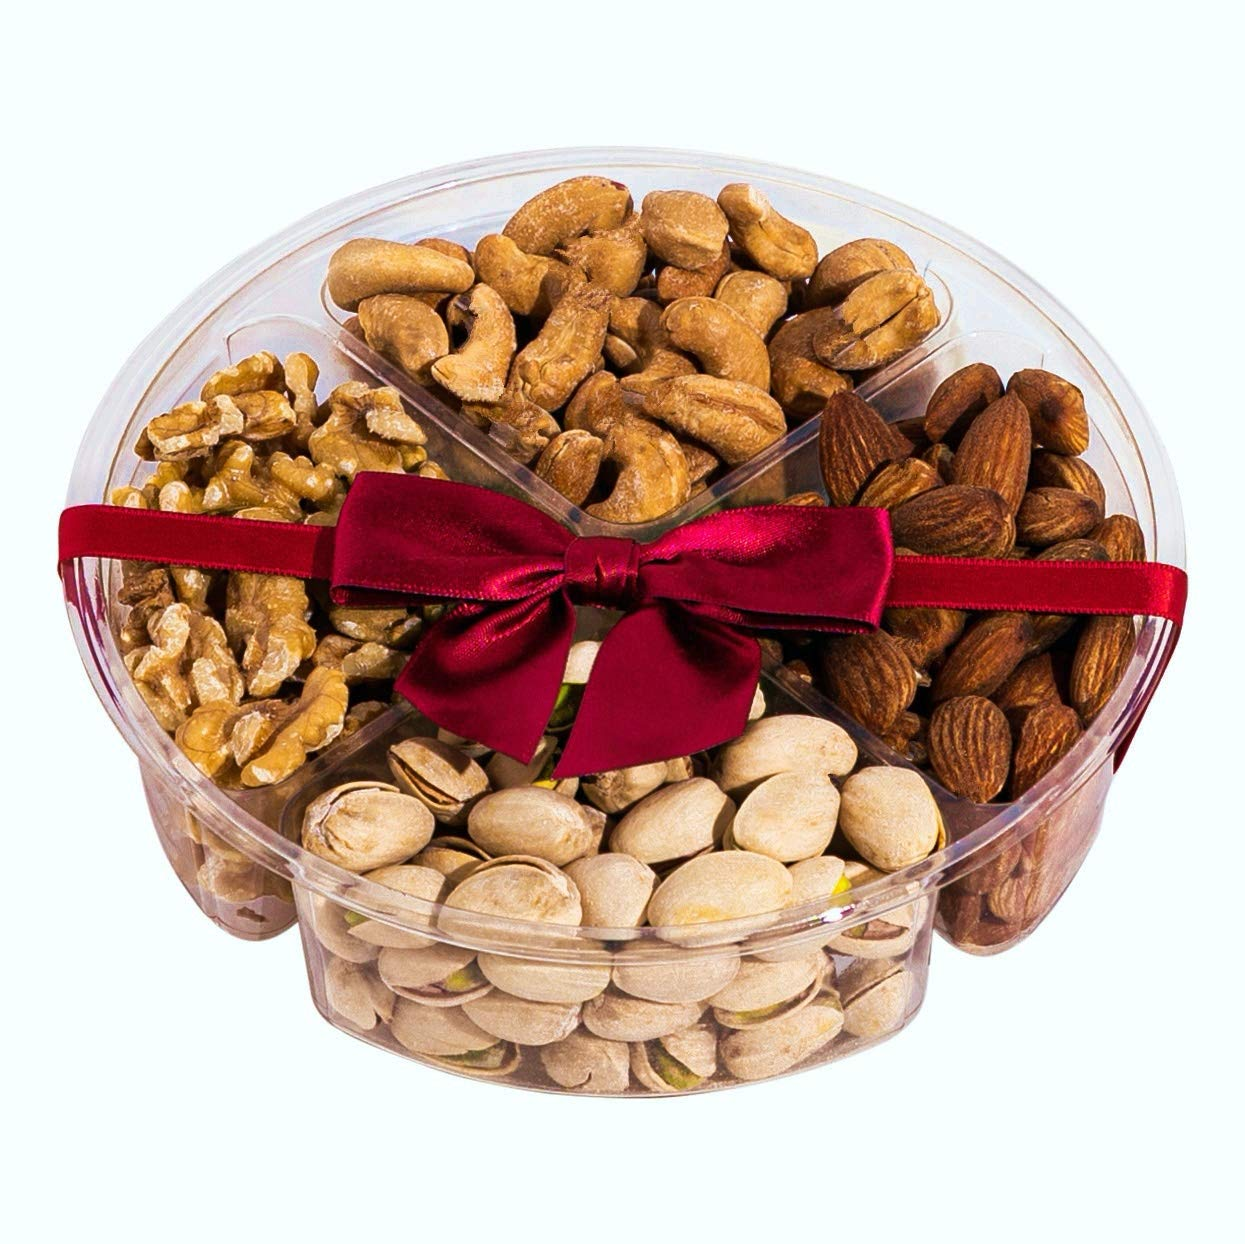 Simple Nuts Holiday Gift Baskets | Assorted Nuts Care Package, Ultra Fresh Nuts, Never Stale | Gourmet Food Snack Gift for Holidays, Christmas, Get Well Soon, New Year's & More | Fast, Secure Shipping